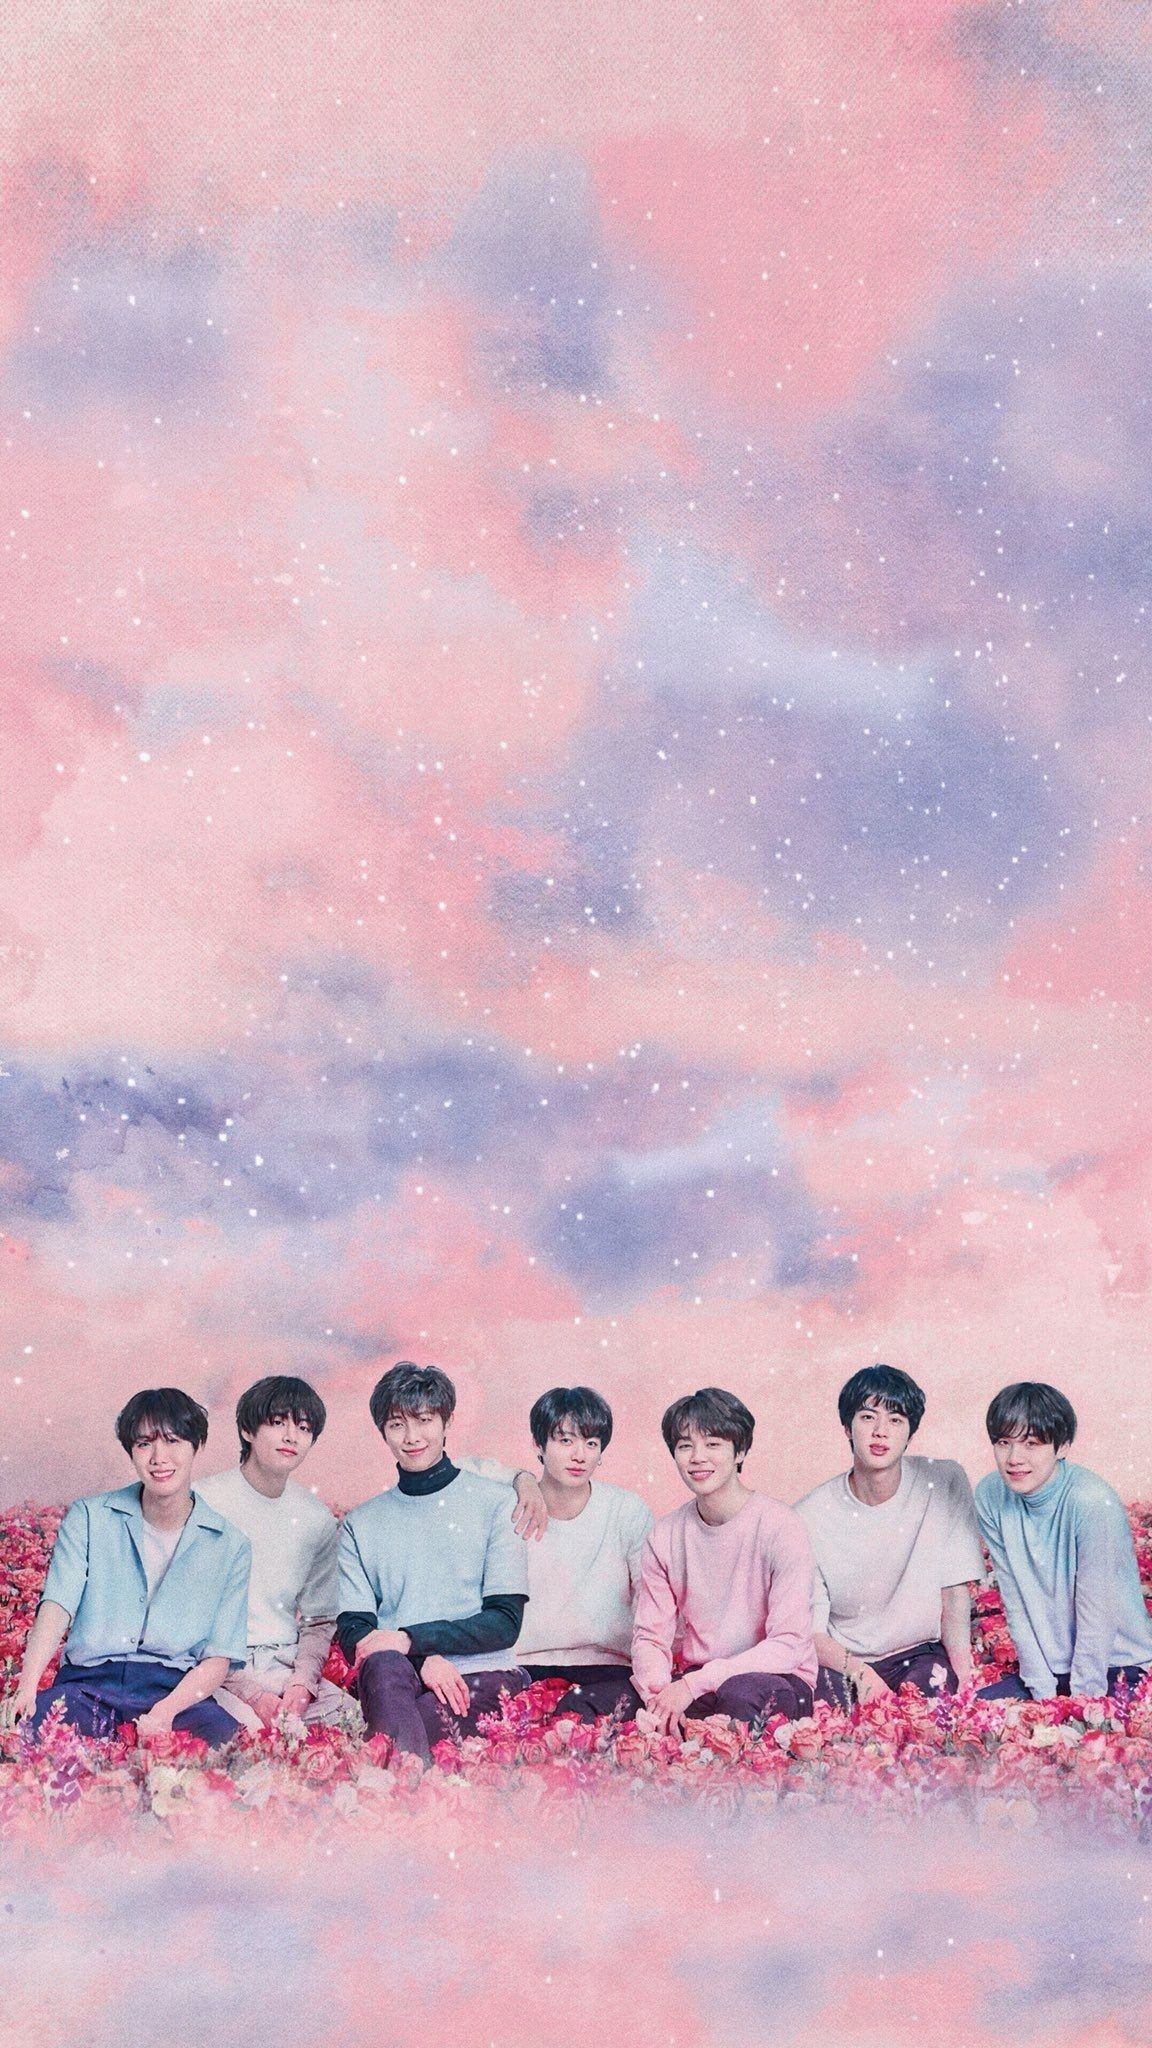 Bts Iphone Wallpapers Top Free Bts Iphone Backgrounds